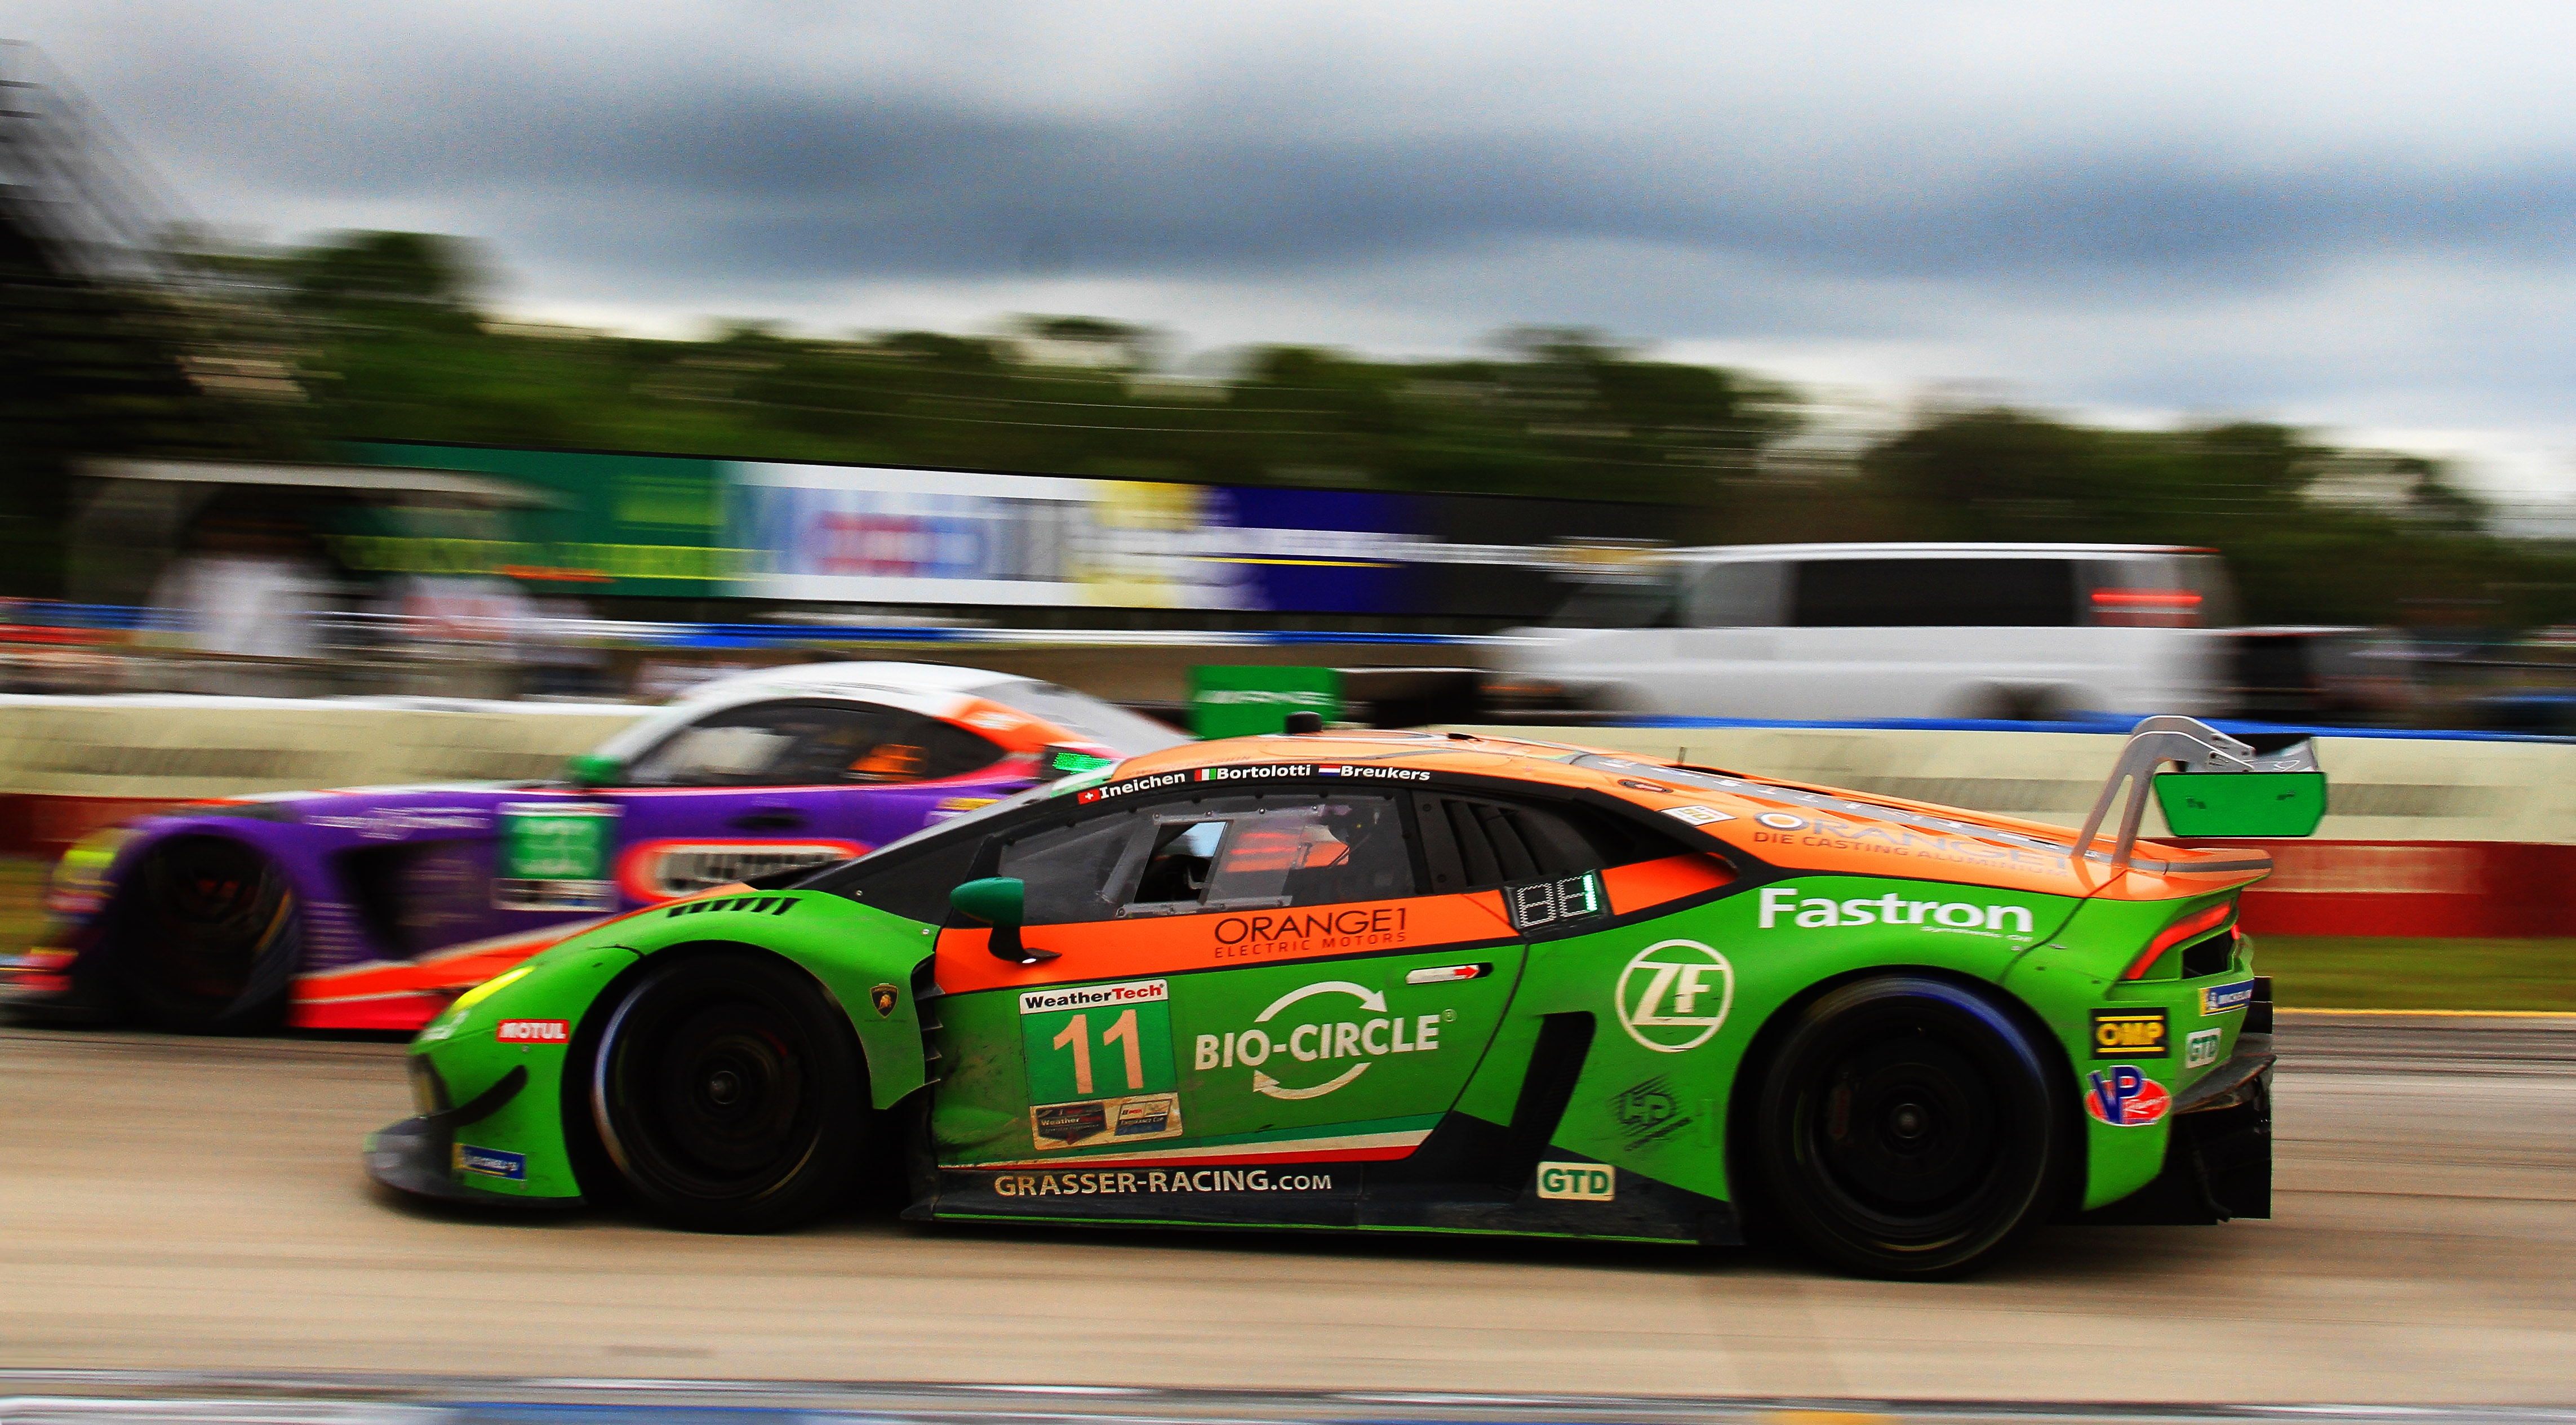 The #11 Grasser Racing Team Huracán GT3 topped the GTD class.